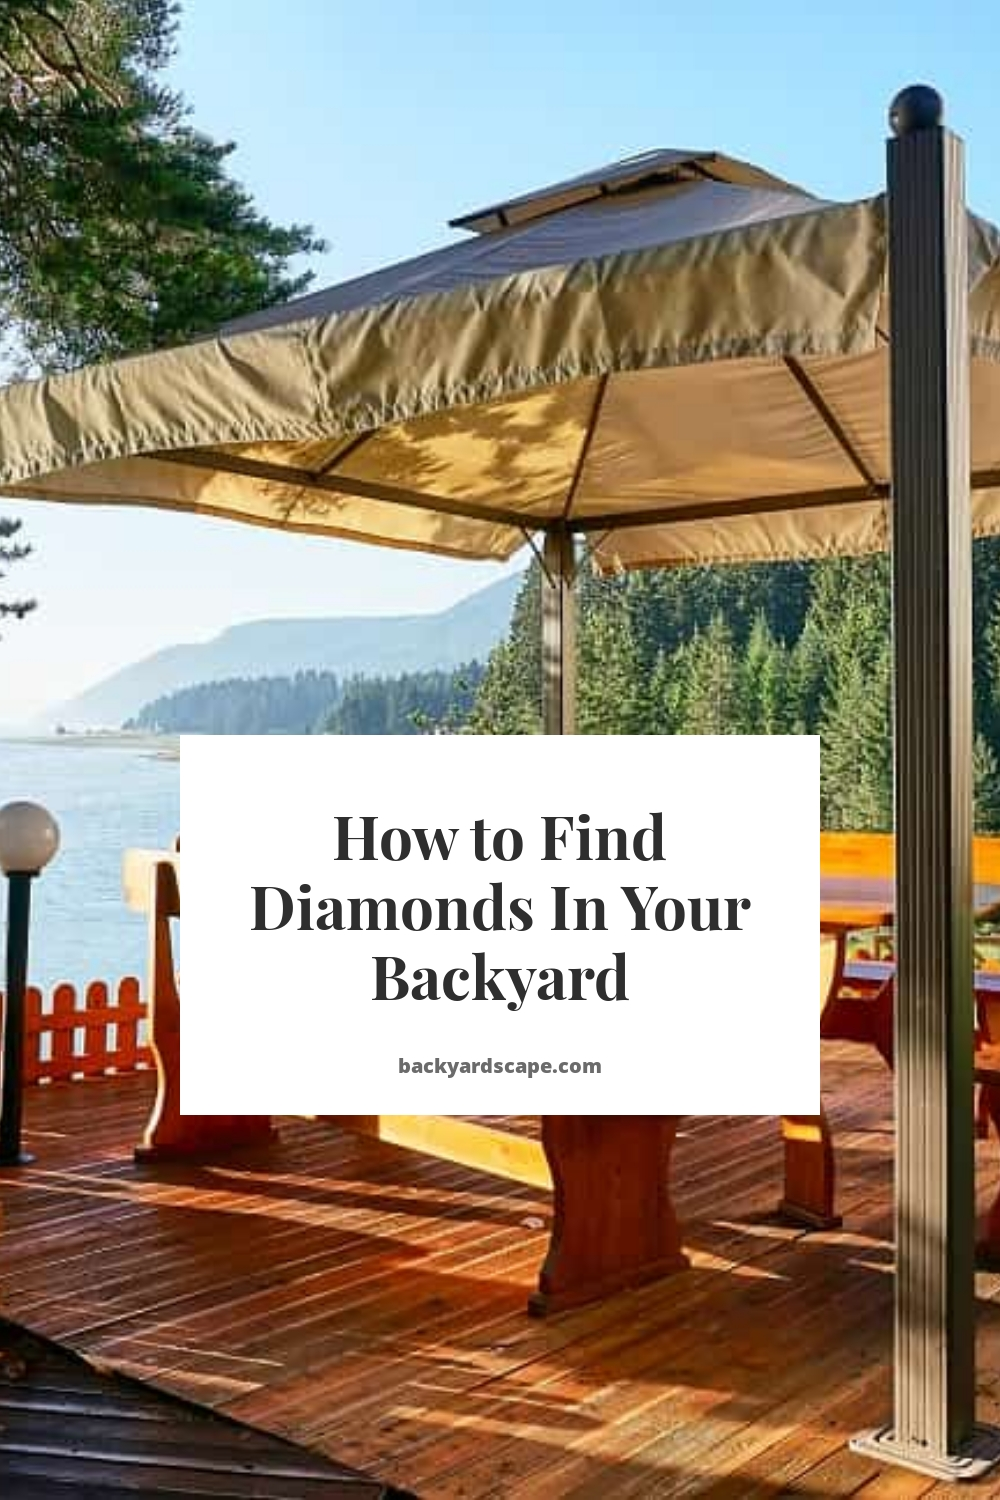 How to Find Diamonds In Your Backyard